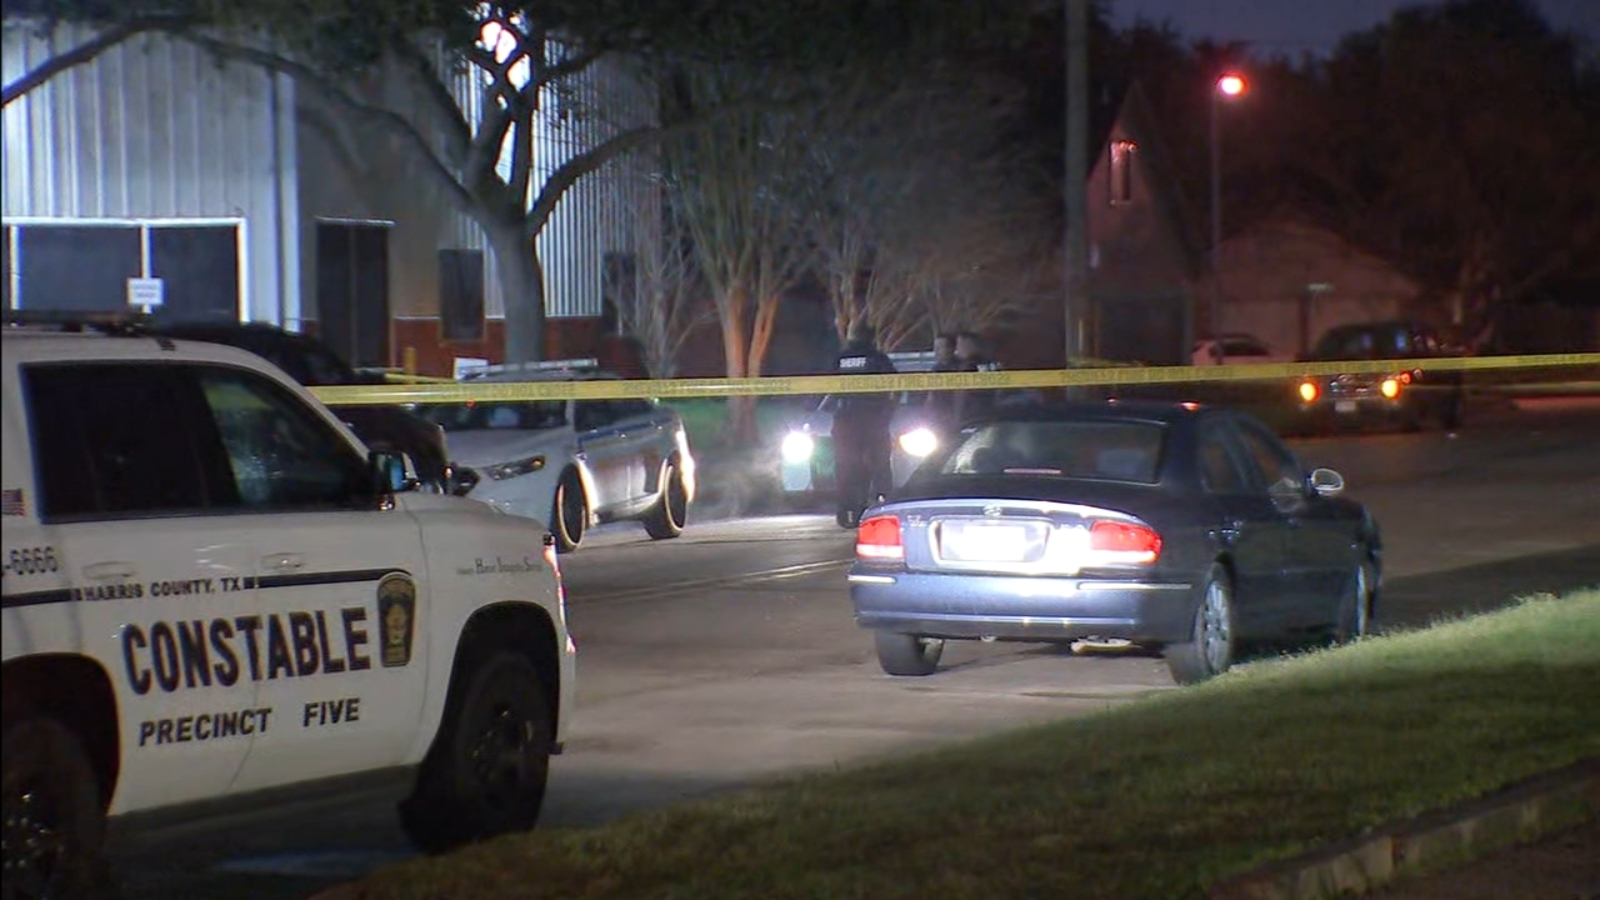 Auto parts store owner shoots burglar during break-in attempt in west Harris County